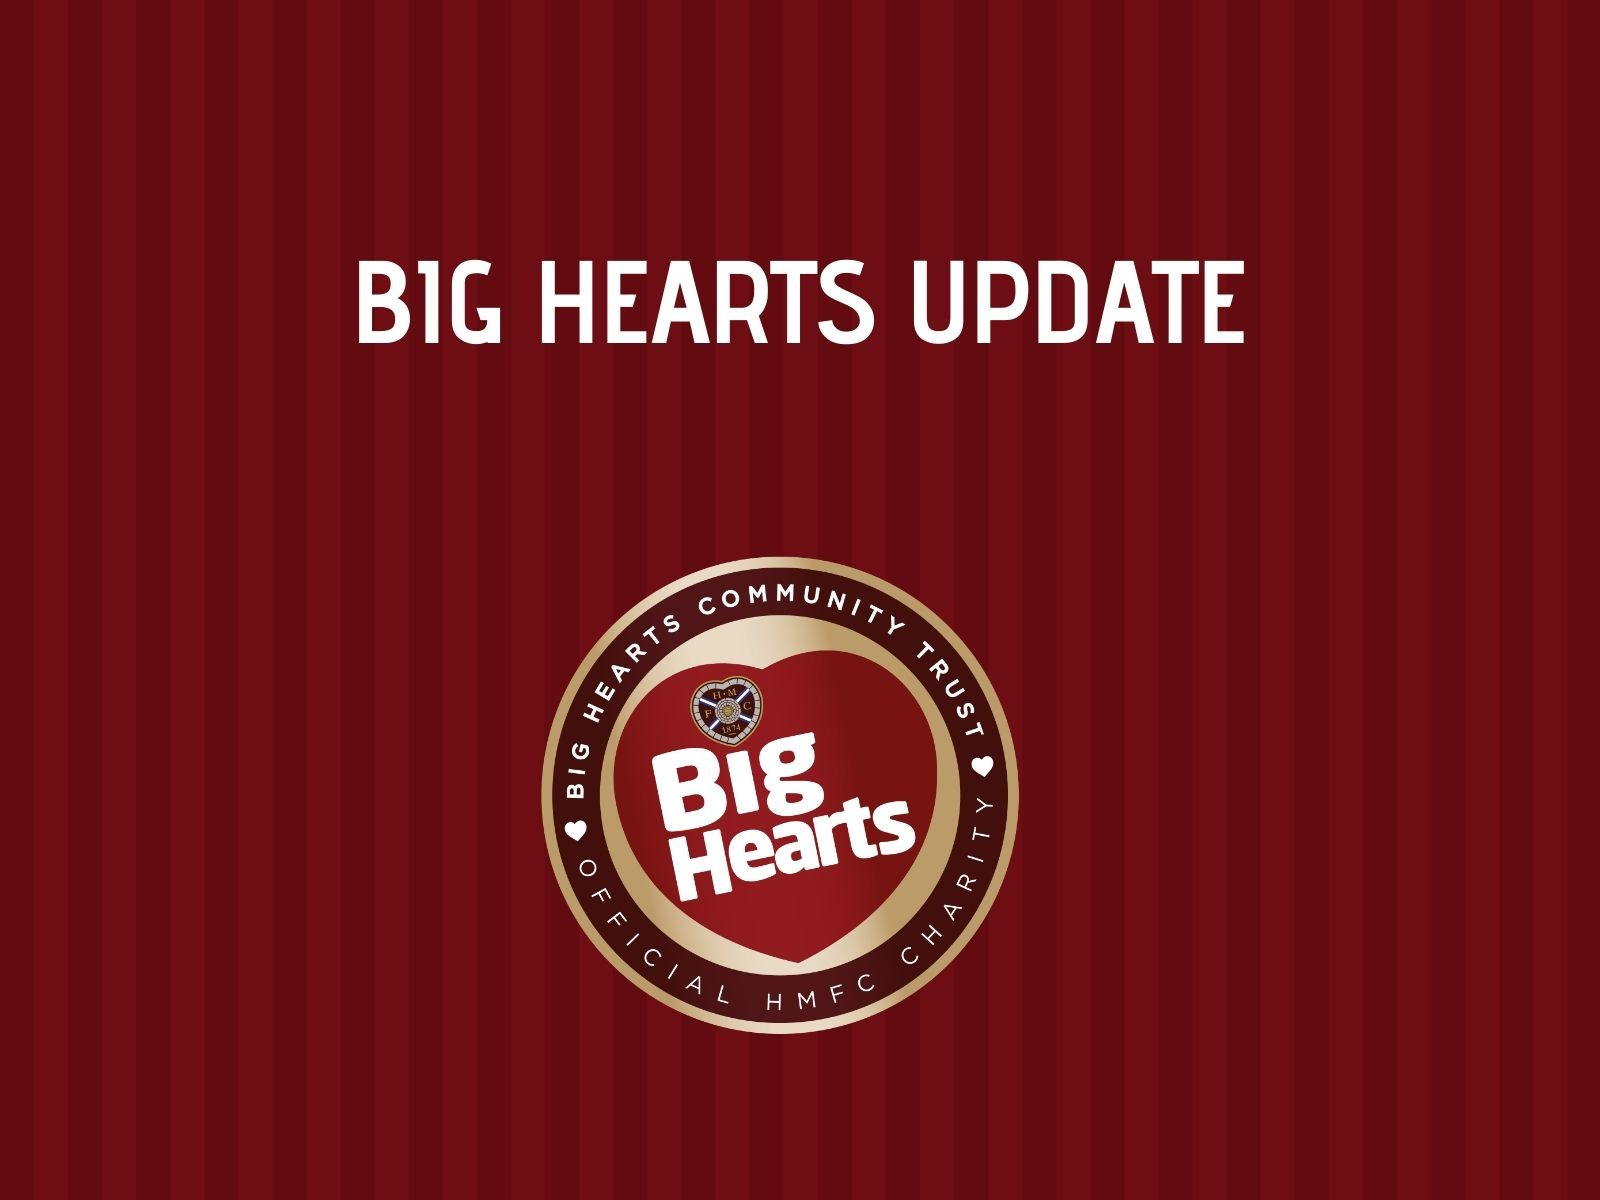 » Update on our activity – Big Hearts